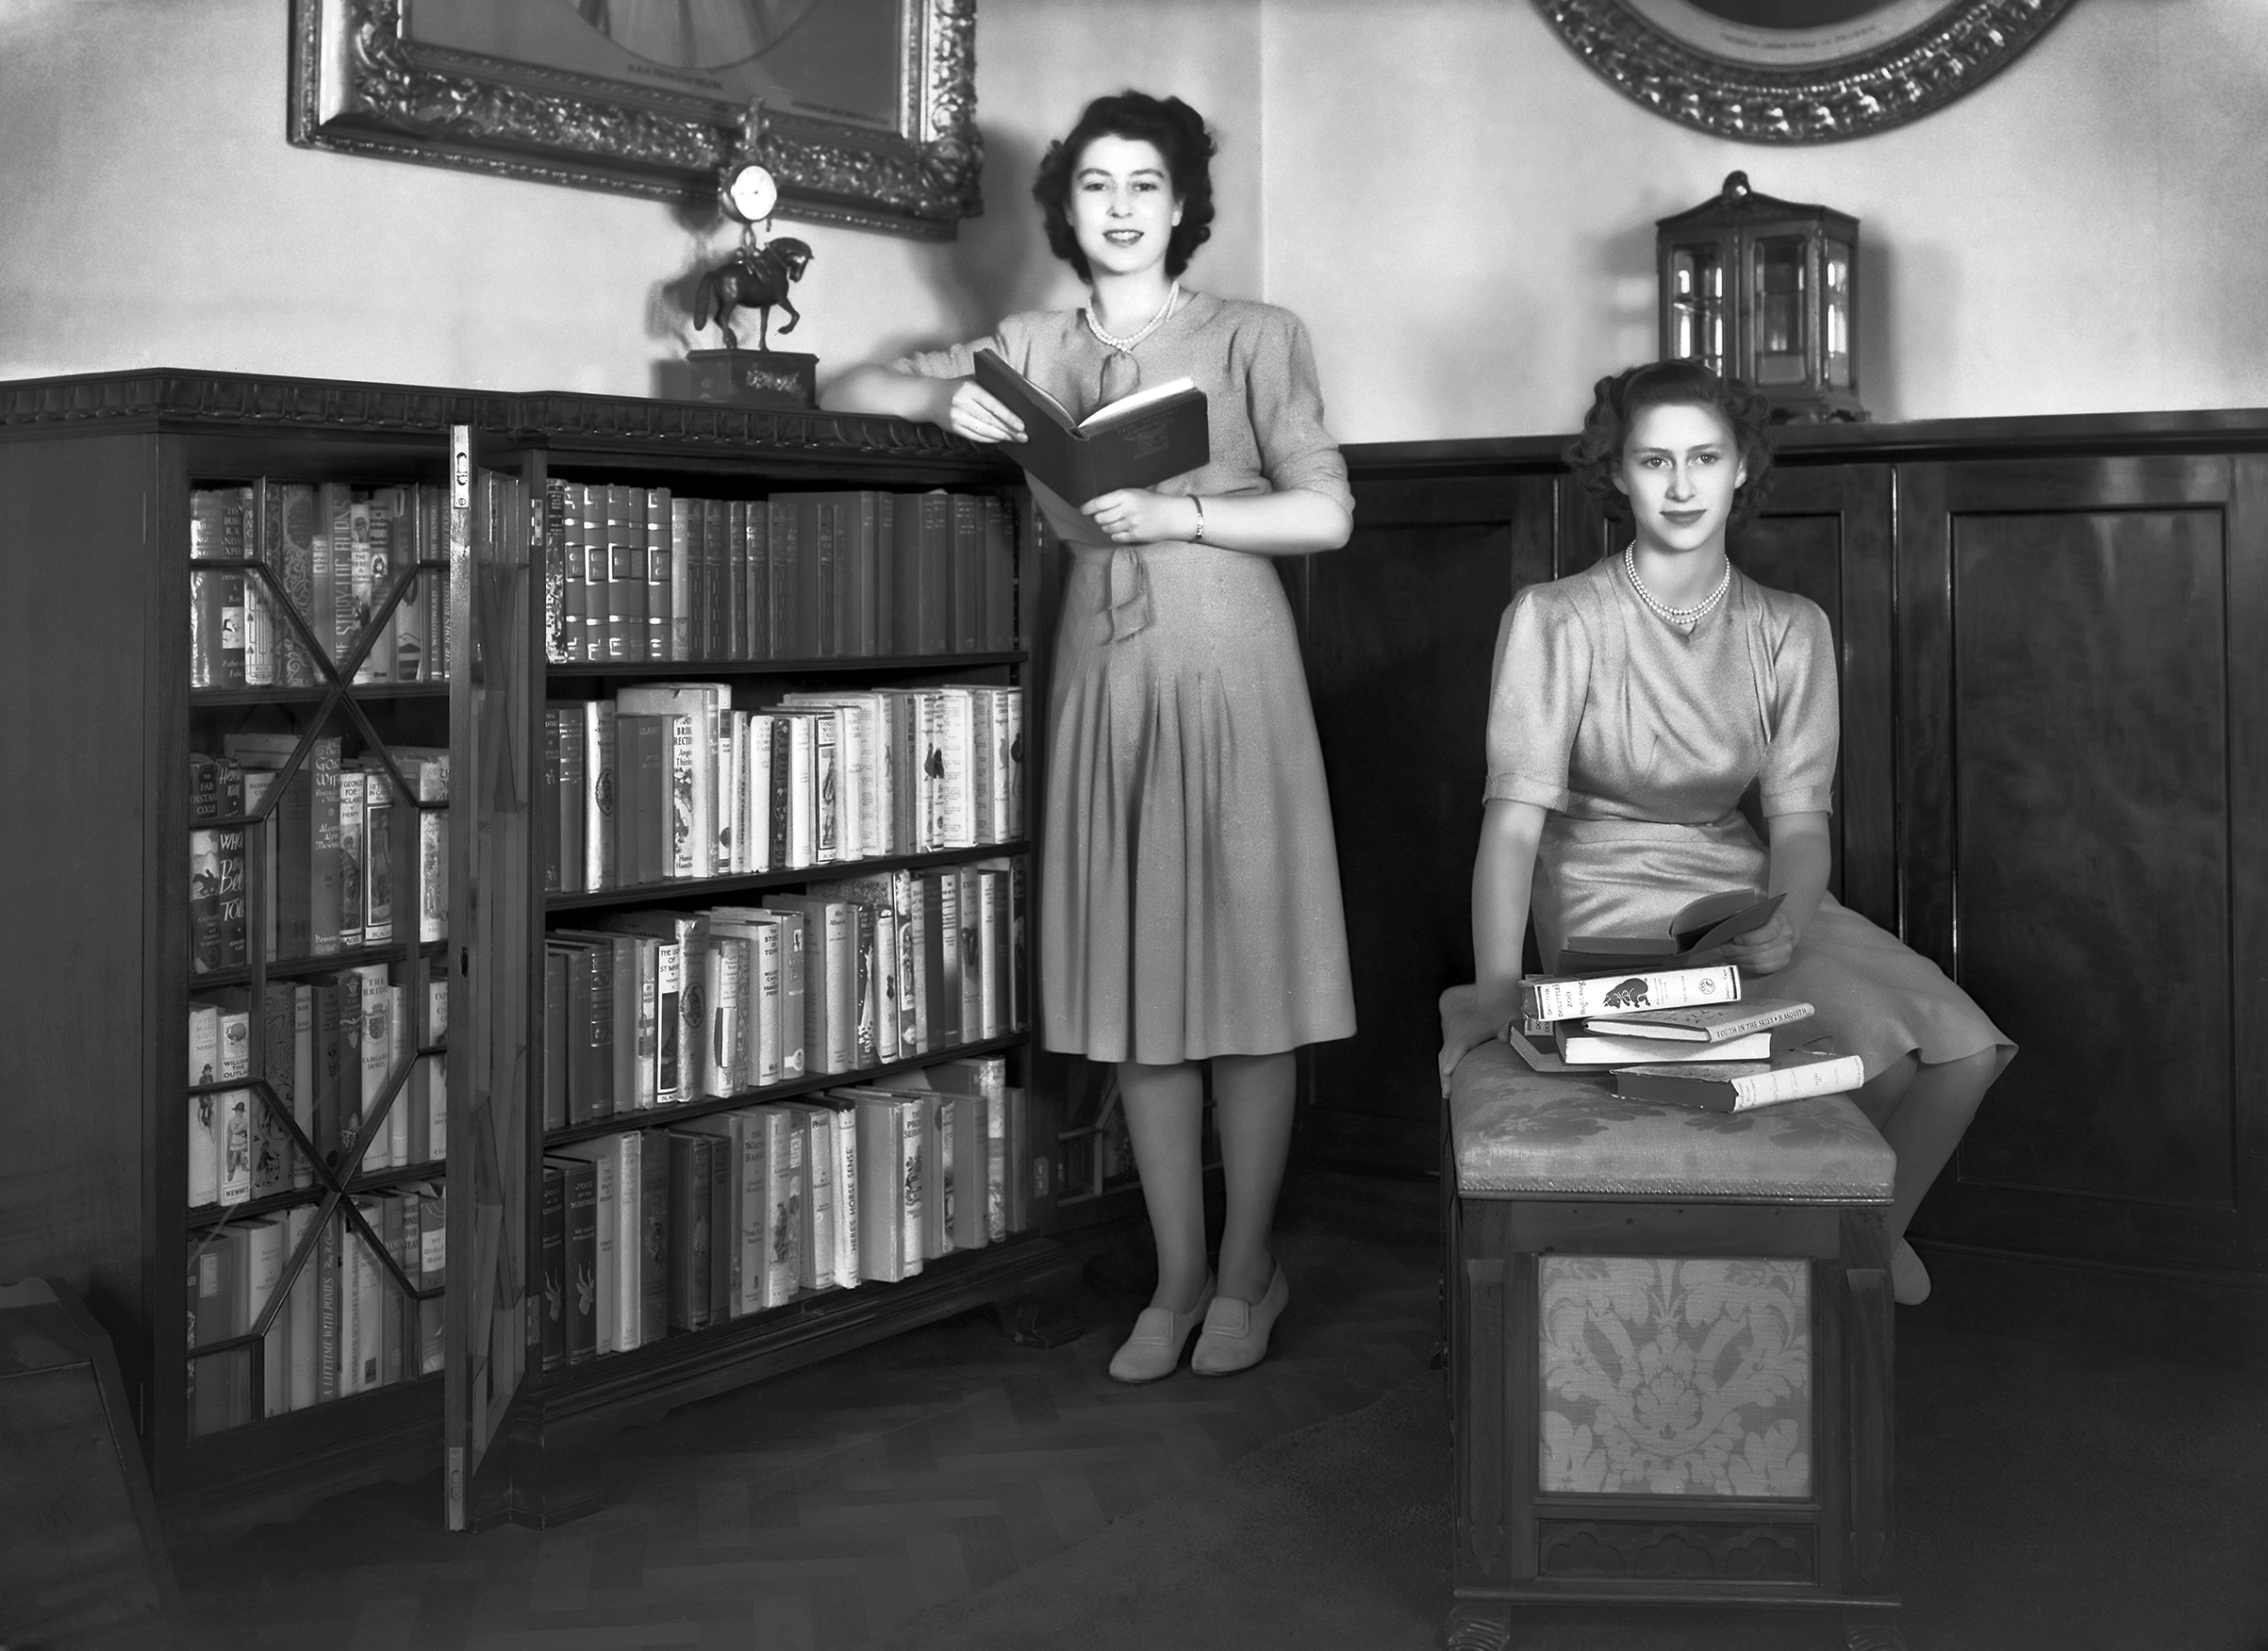 Then-Princess Elizabeth and her sister Princess Margaret in a library in Buckingham Palace on July 19, 1946.